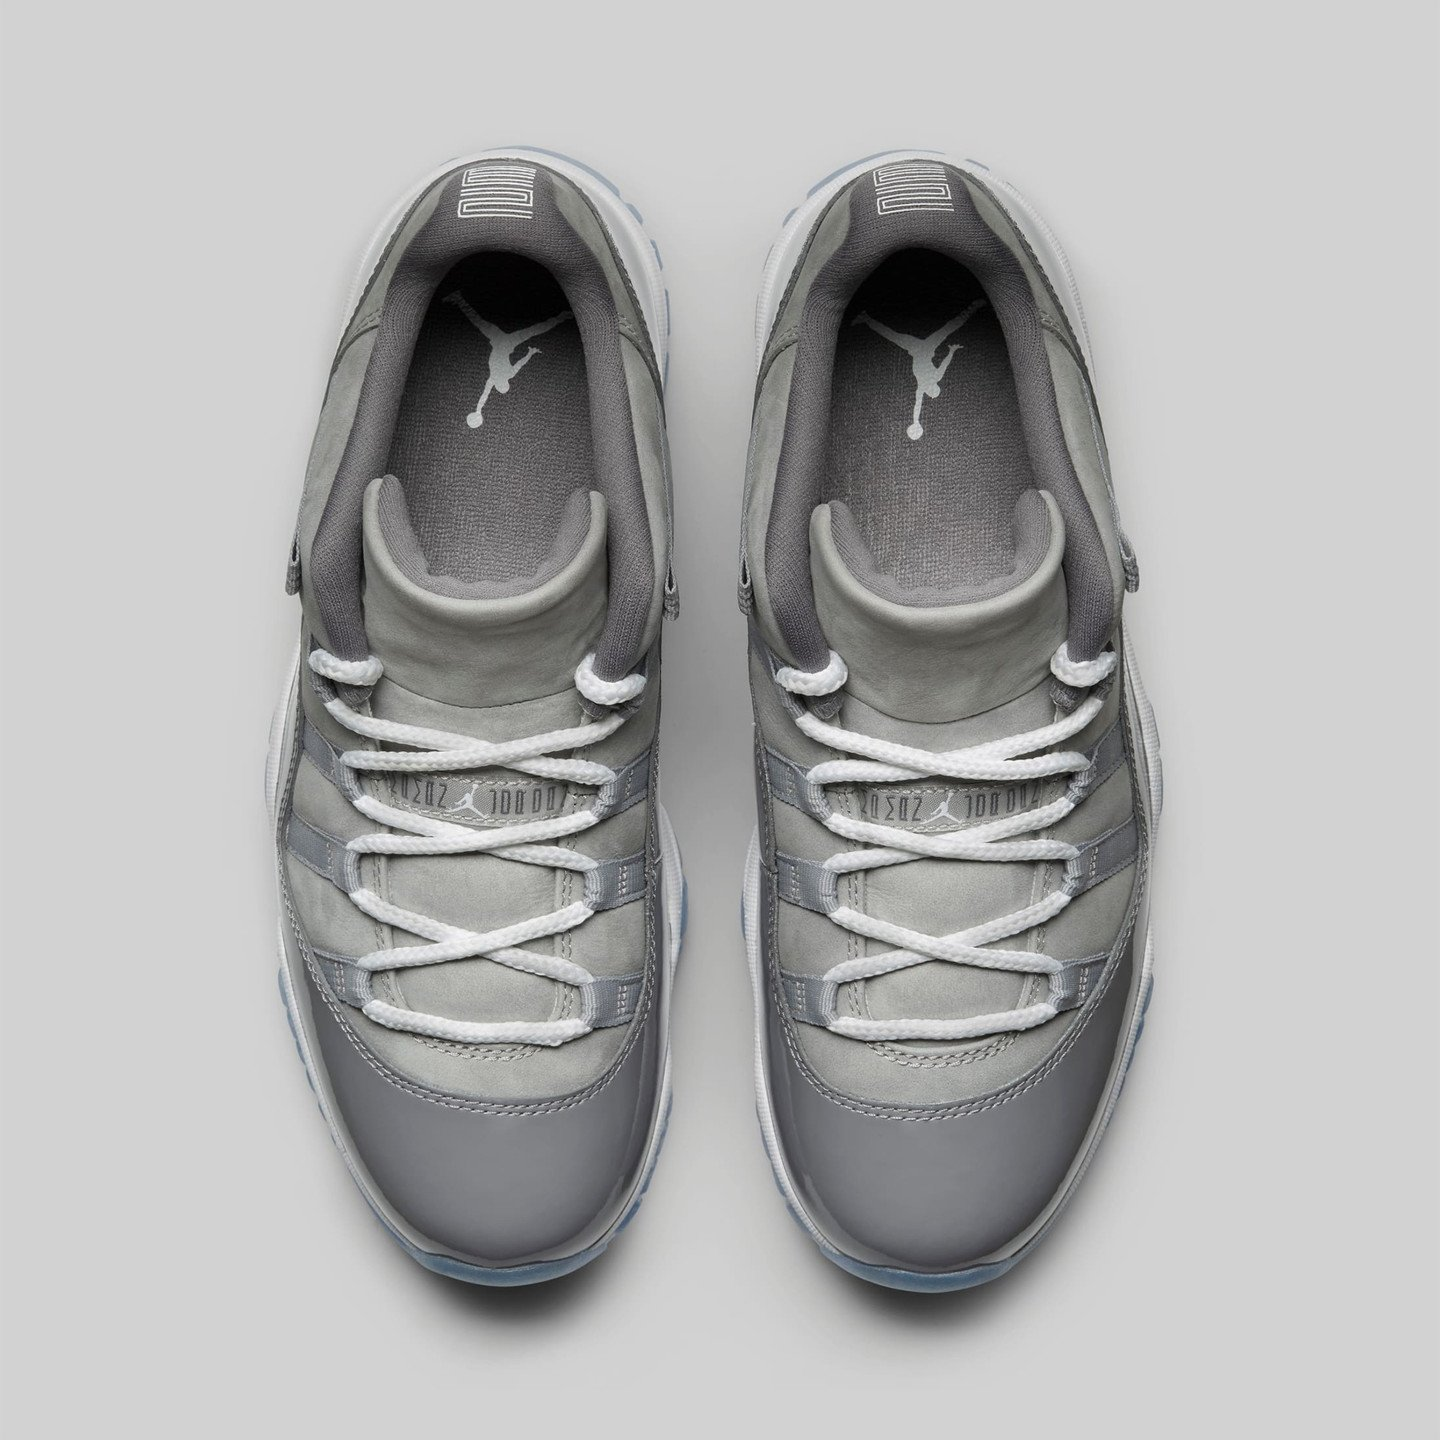 Jordan Air Jordan 11 Retro Low 'Cool Grey' Medium Grey / White / Gunsmoke 528895-003